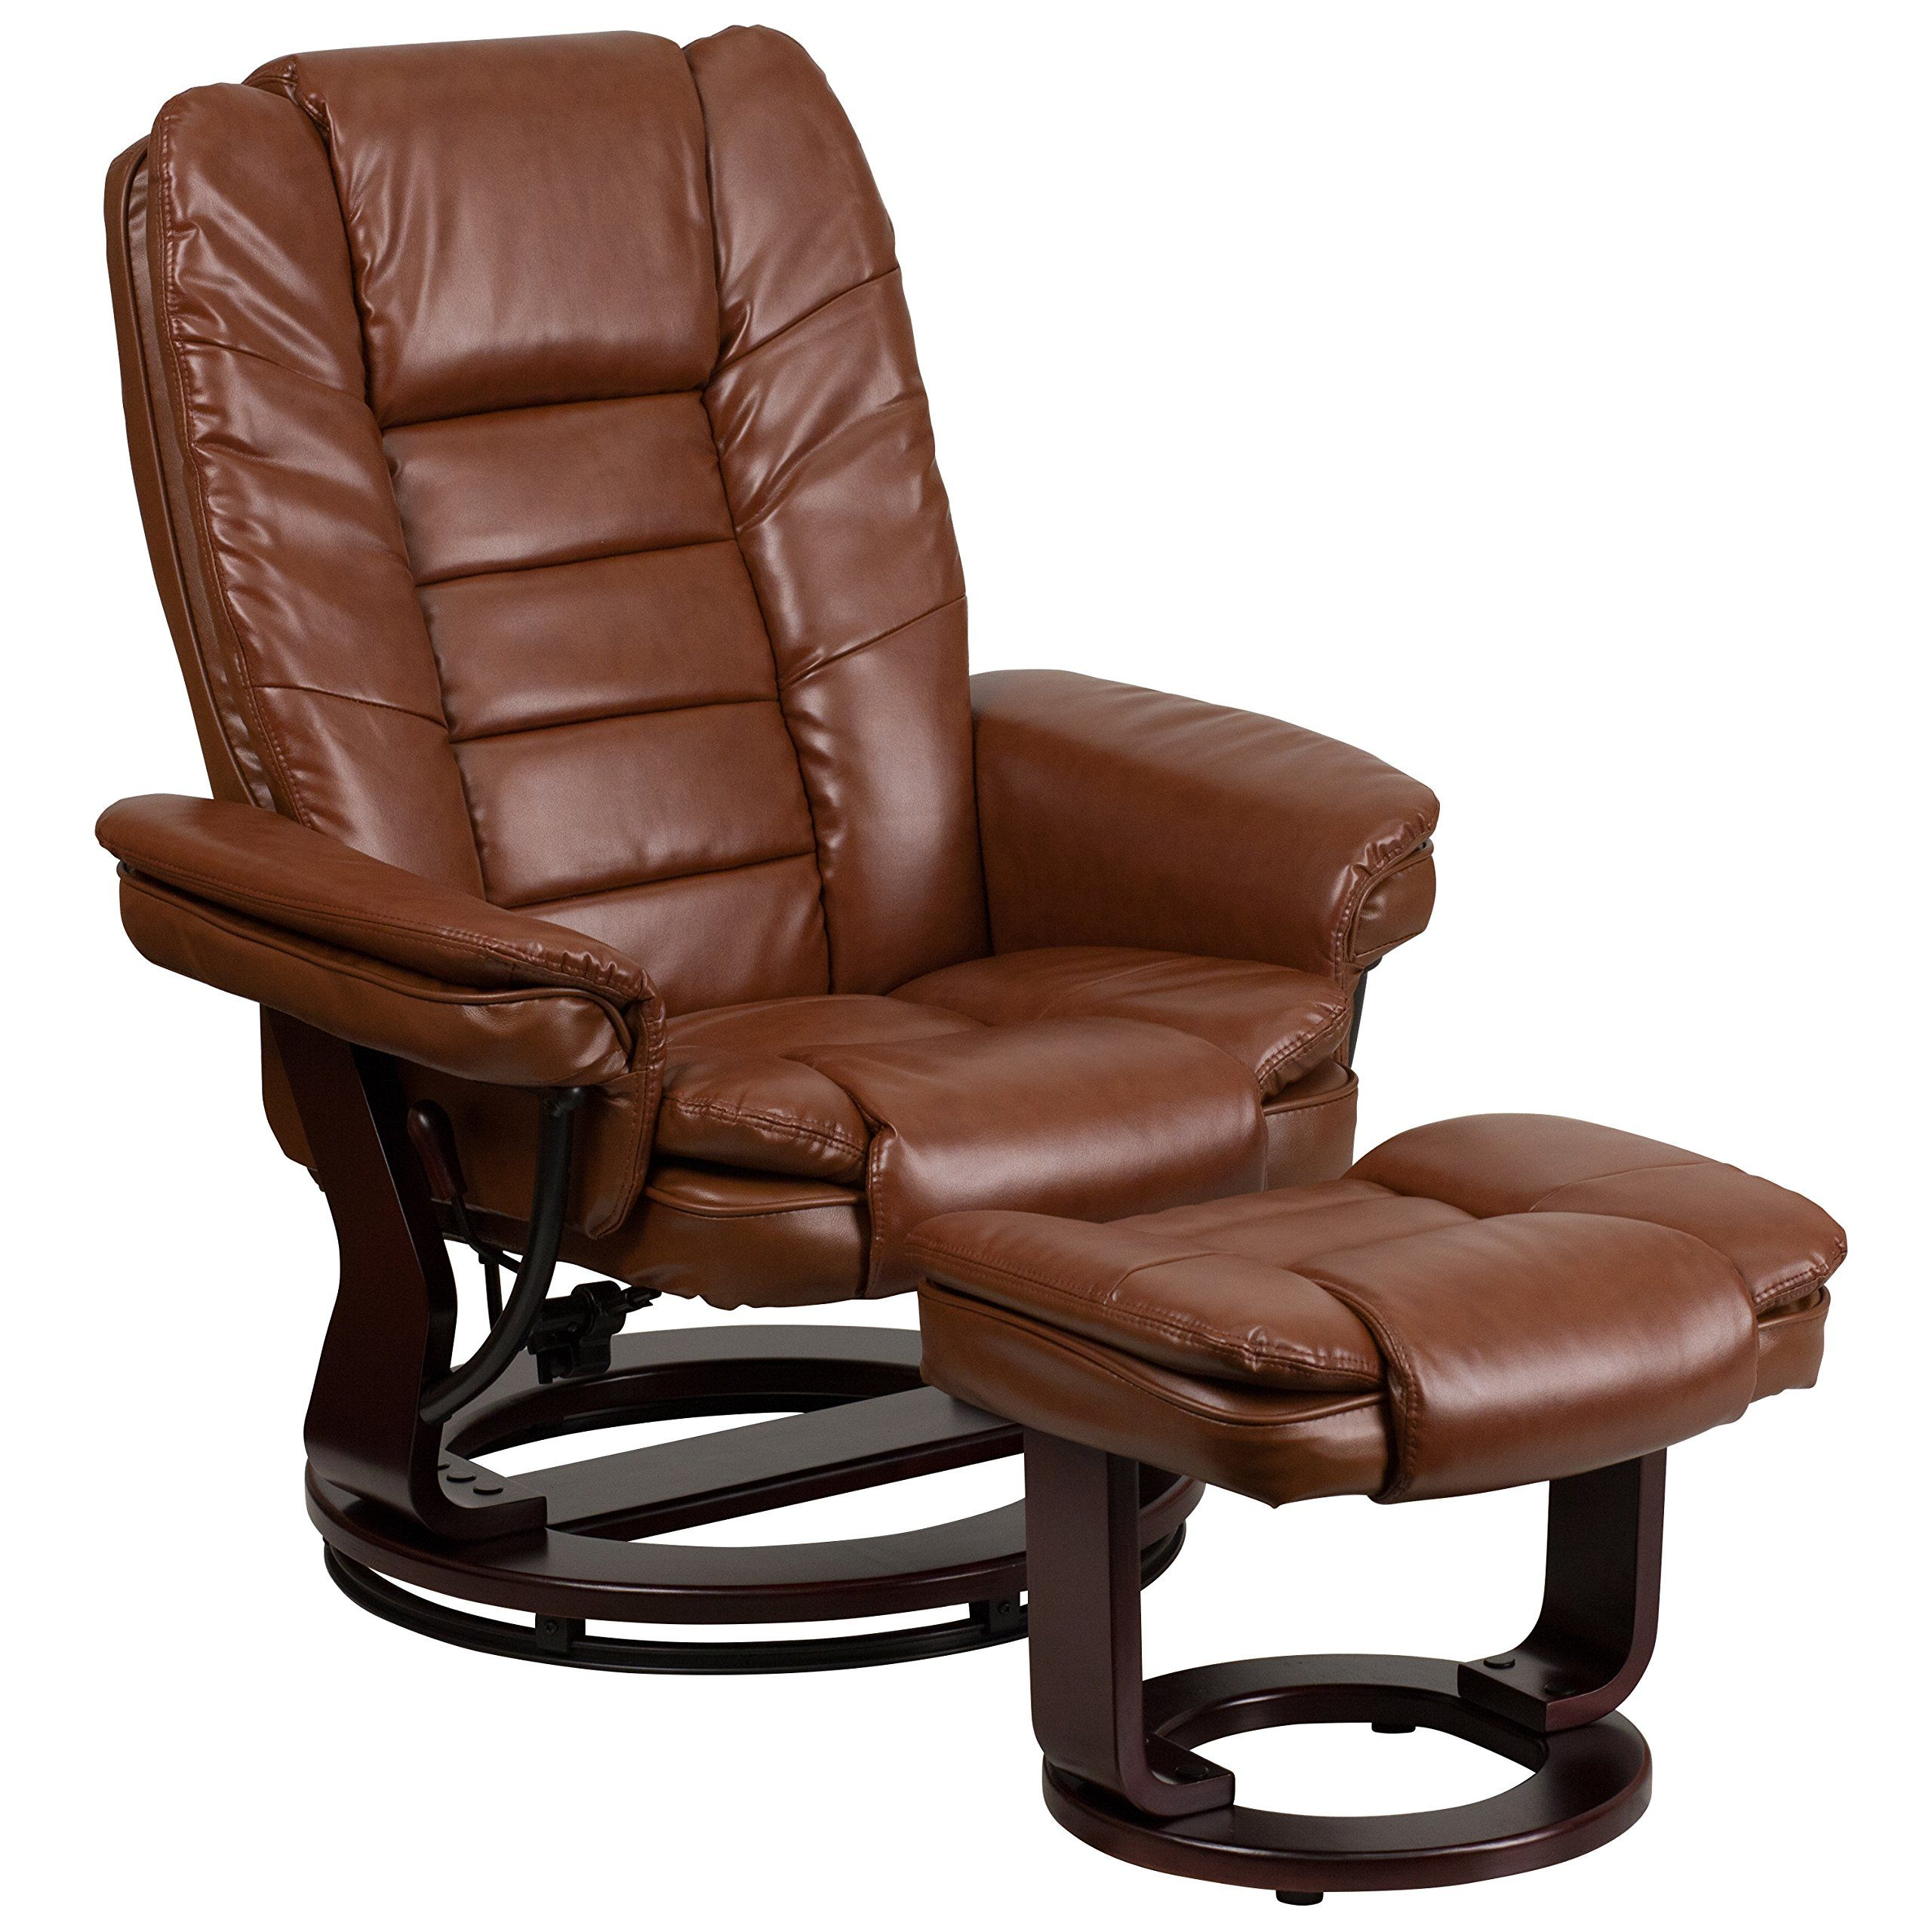 Flash Furniture Contemporary MultiPosition Recliner with